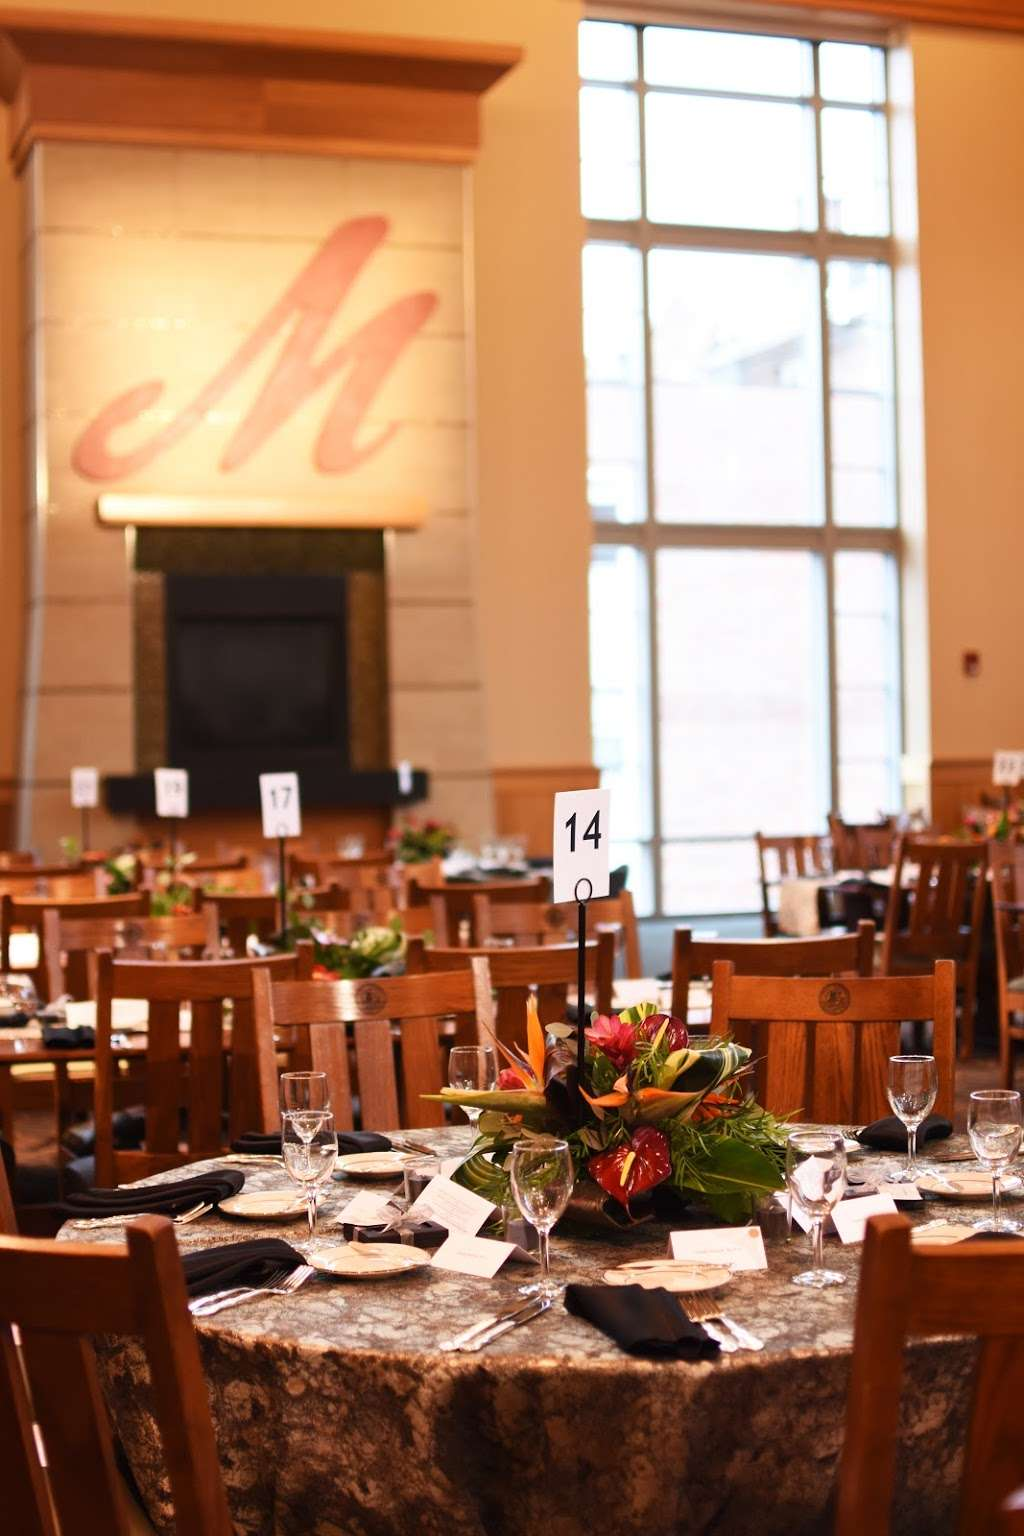 The Wood Dining Commons (Muhlenberg College Dining) - restaurant  | Photo 2 of 10 | Address: 2400 W Chew St, Allentown, PA 18104, USA | Phone: (484) 664-3488